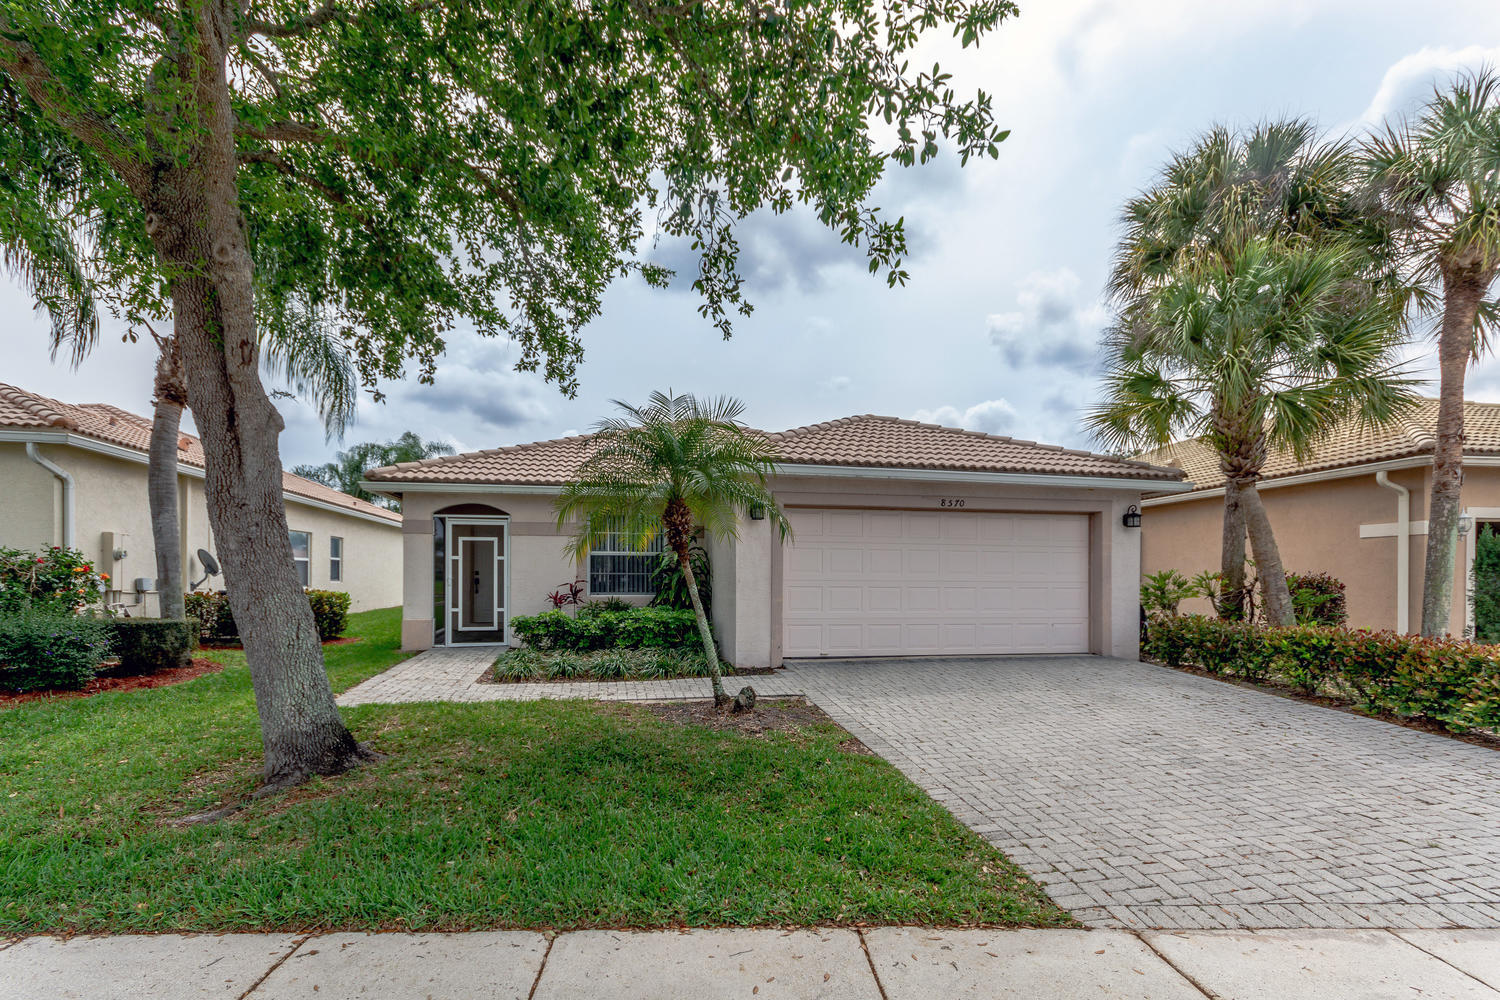 8570 Pine Cay West Palm Beach, FL 33411 West Palm Beach FL 33411